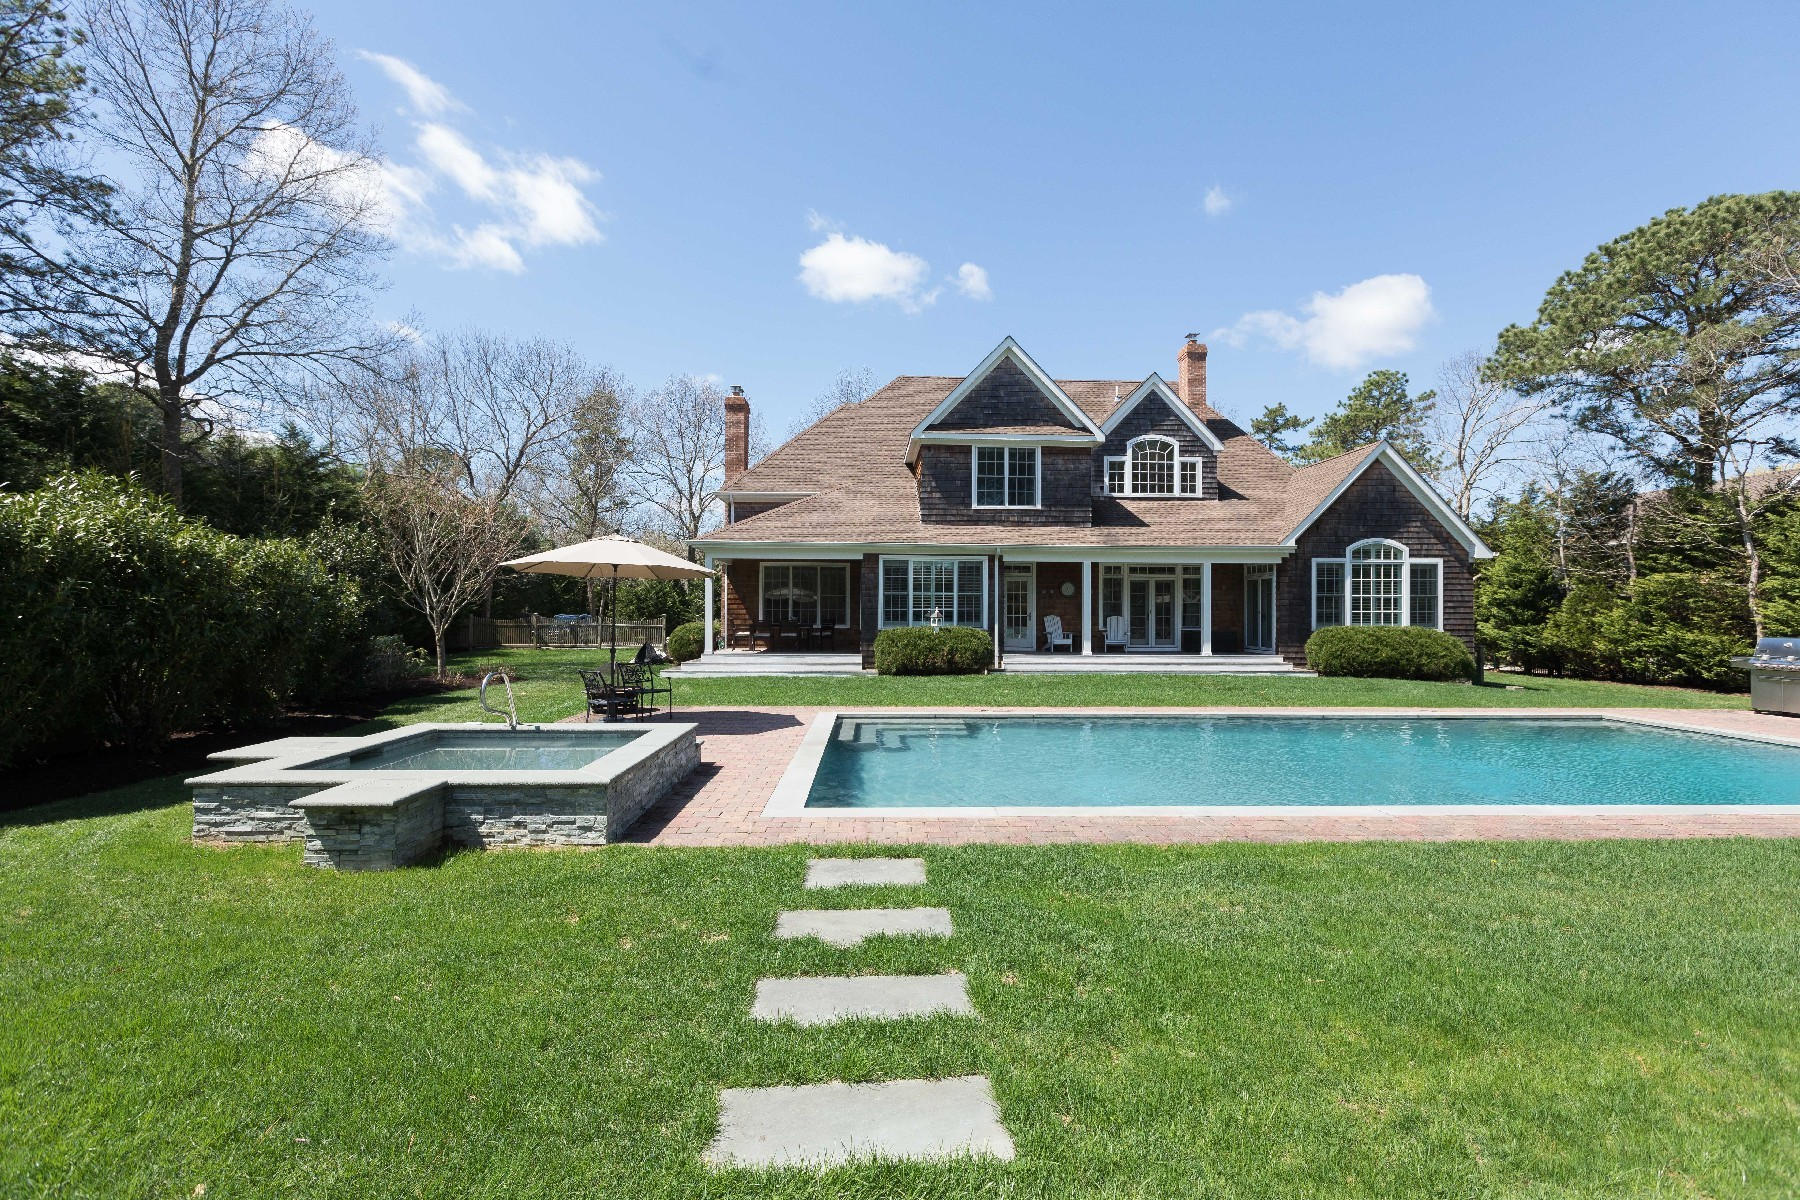 Single Family Homes for Sale at Quogue 15 Post Fields Ln Quogue, New York 11959 United States